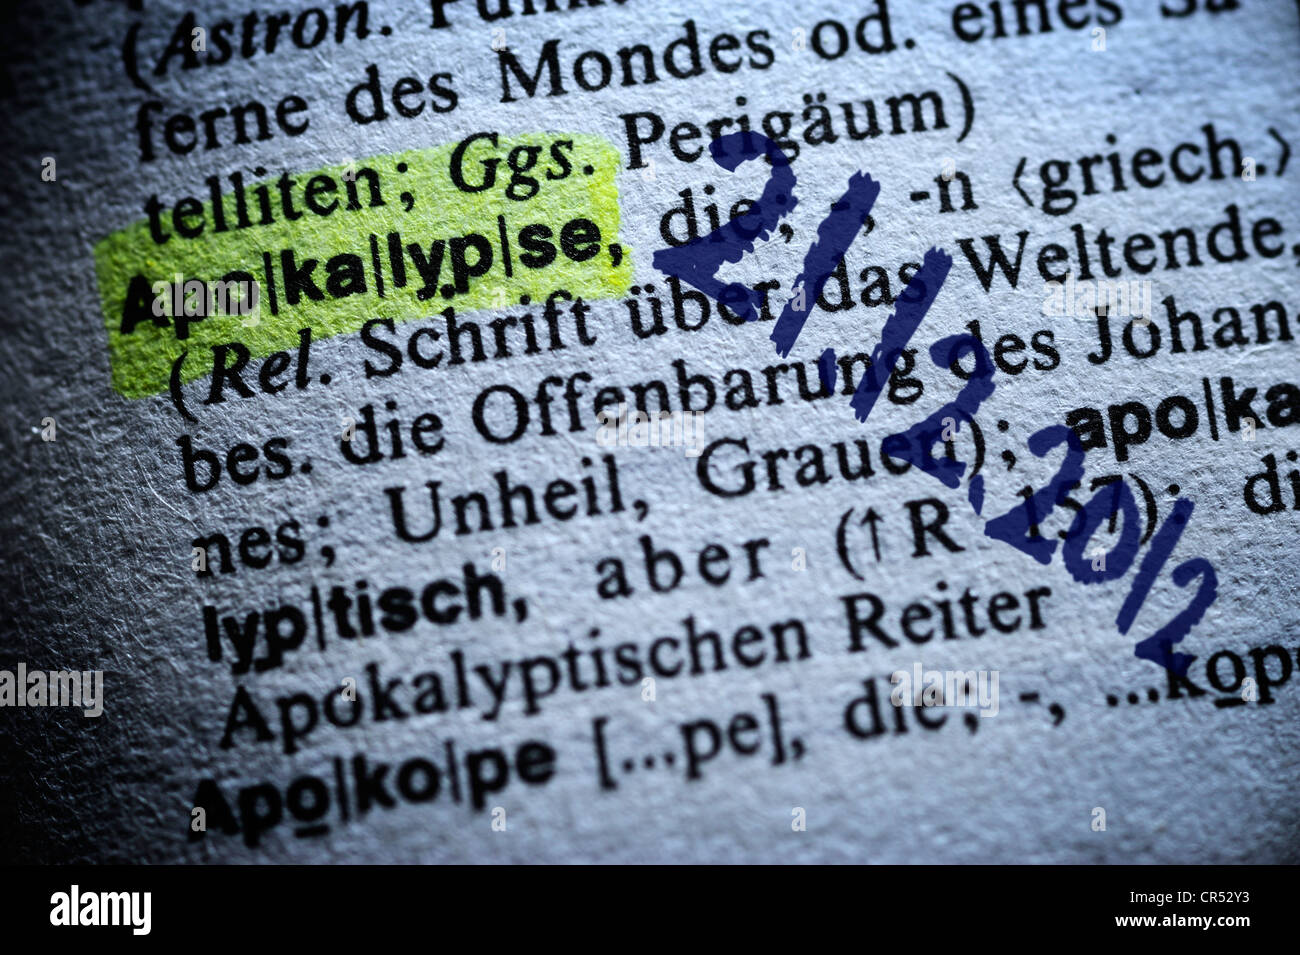 The word apocalypse highlighted in a dictionary and the date 21.12.2012, symbolic image for the doomsday prophecy - Stock Image